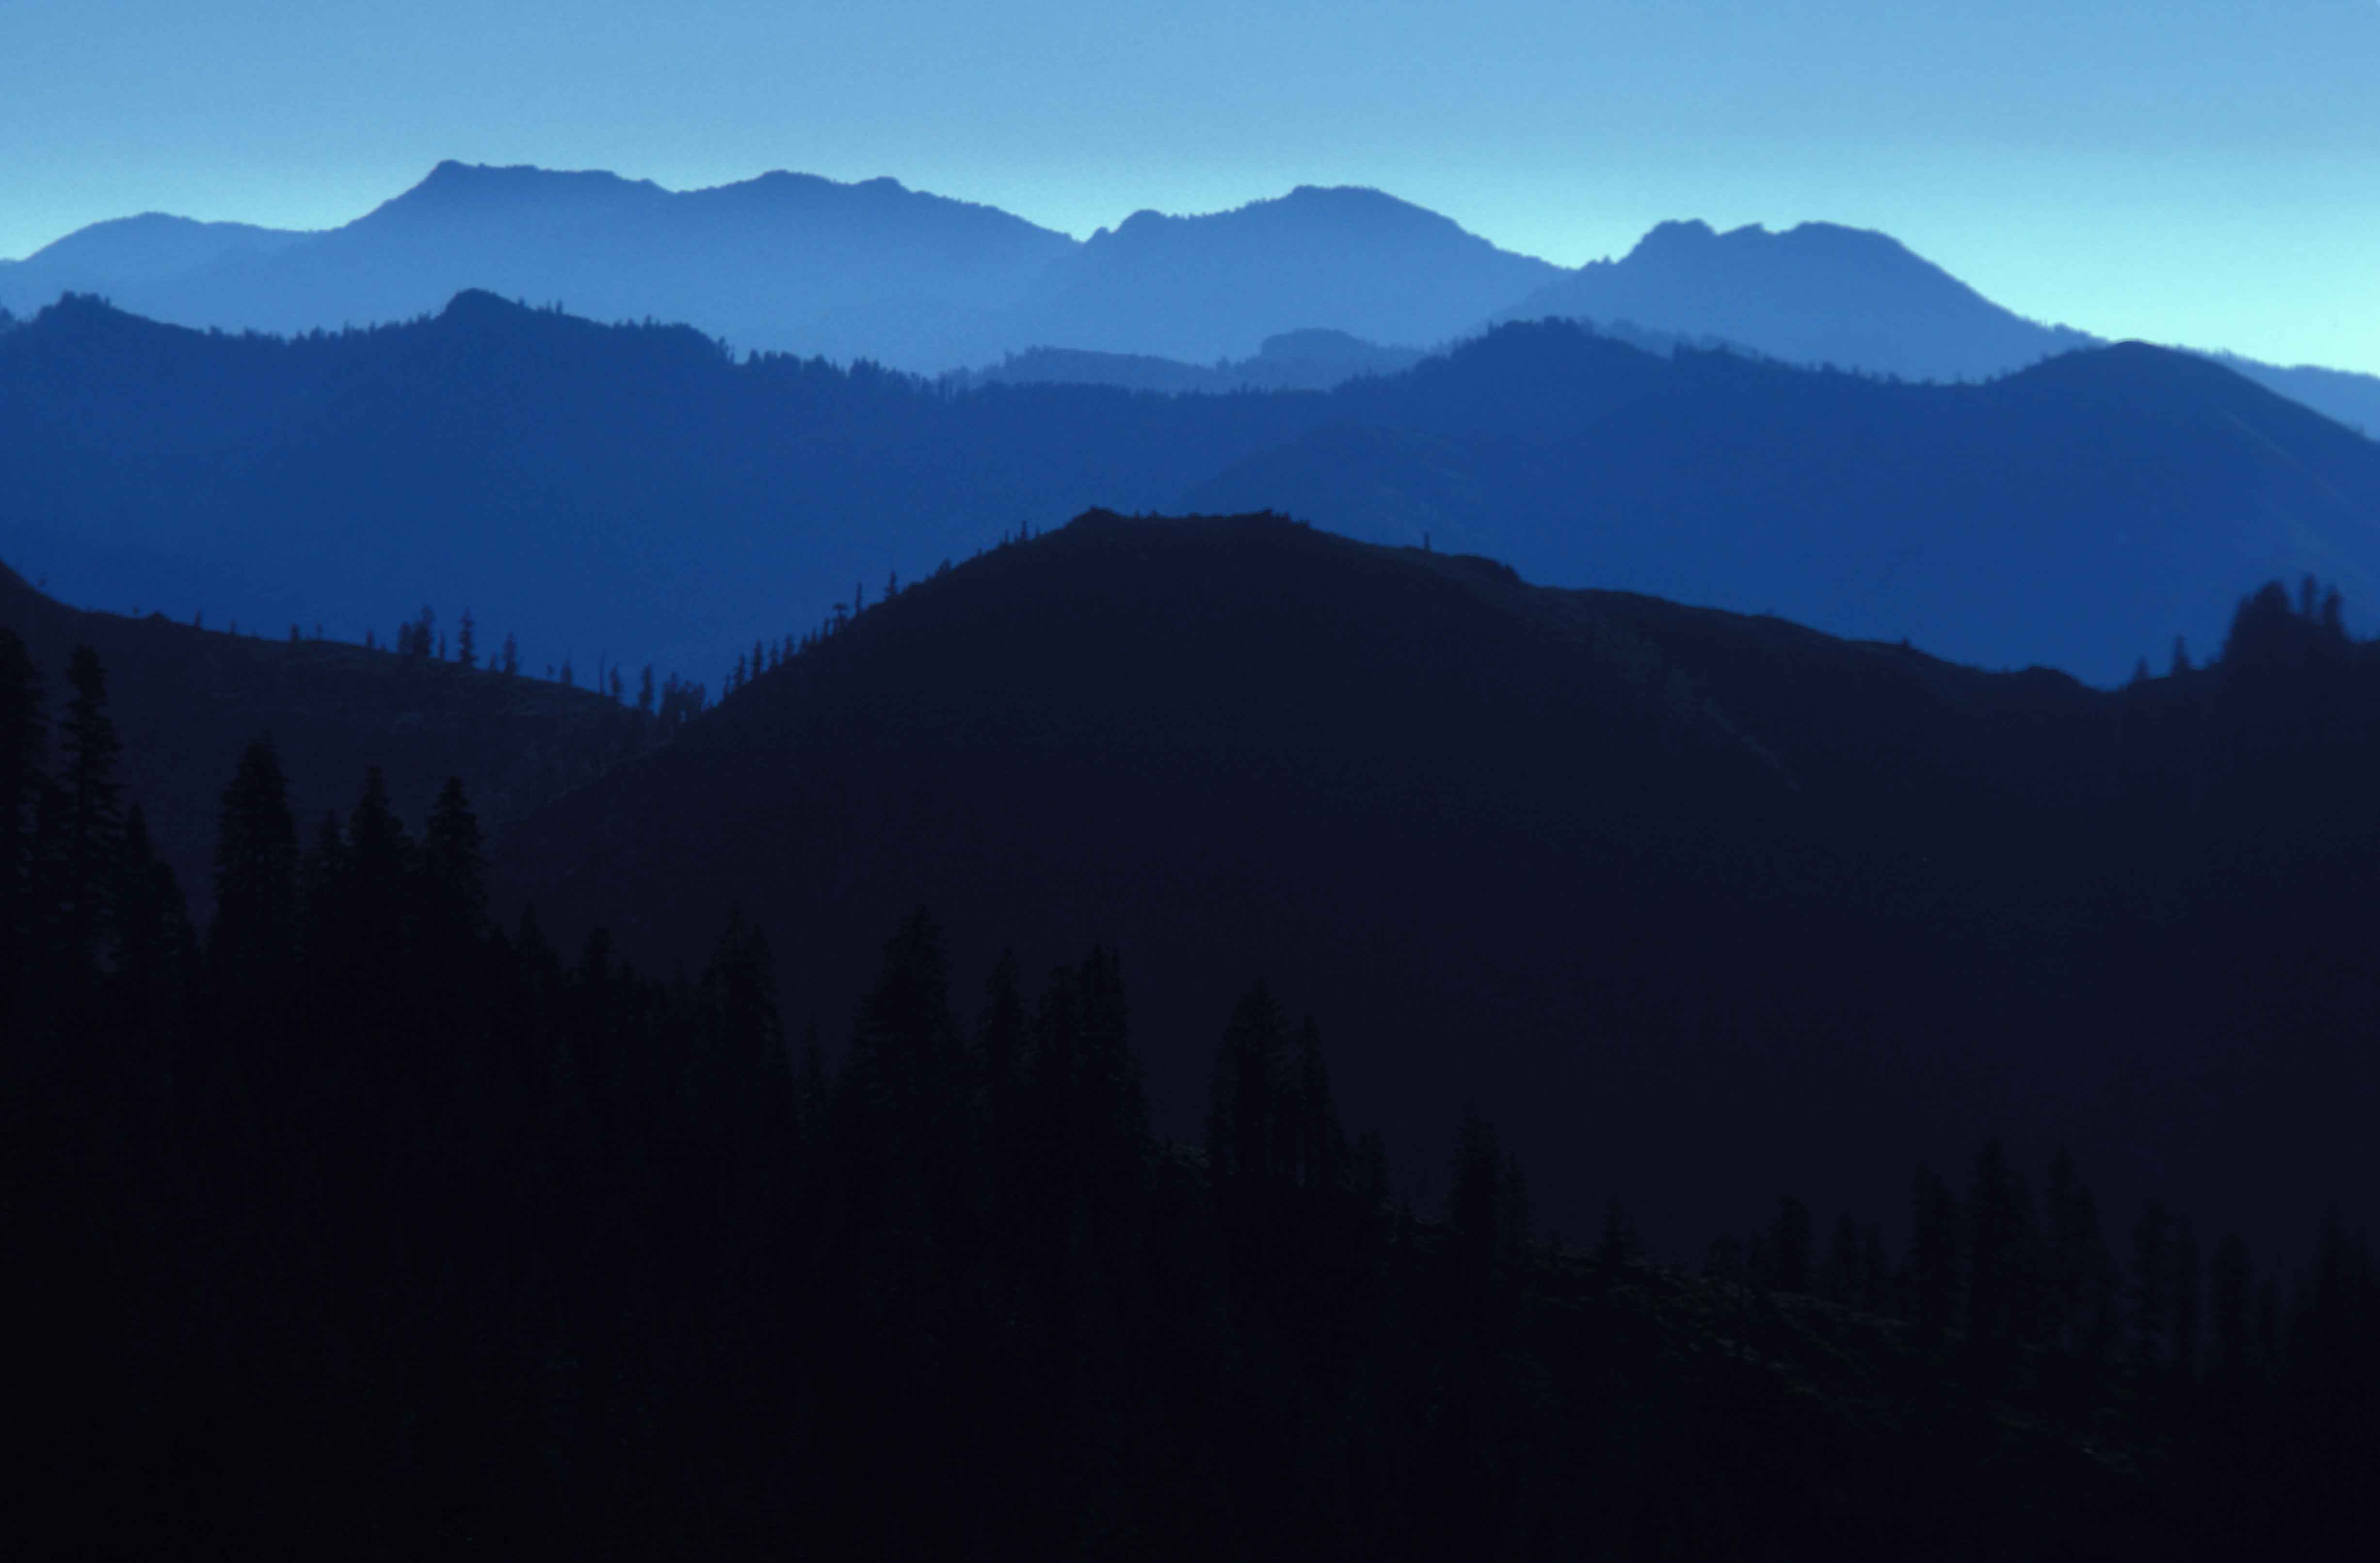 File view of mountains in silhouette in the marble Mountain silhouette